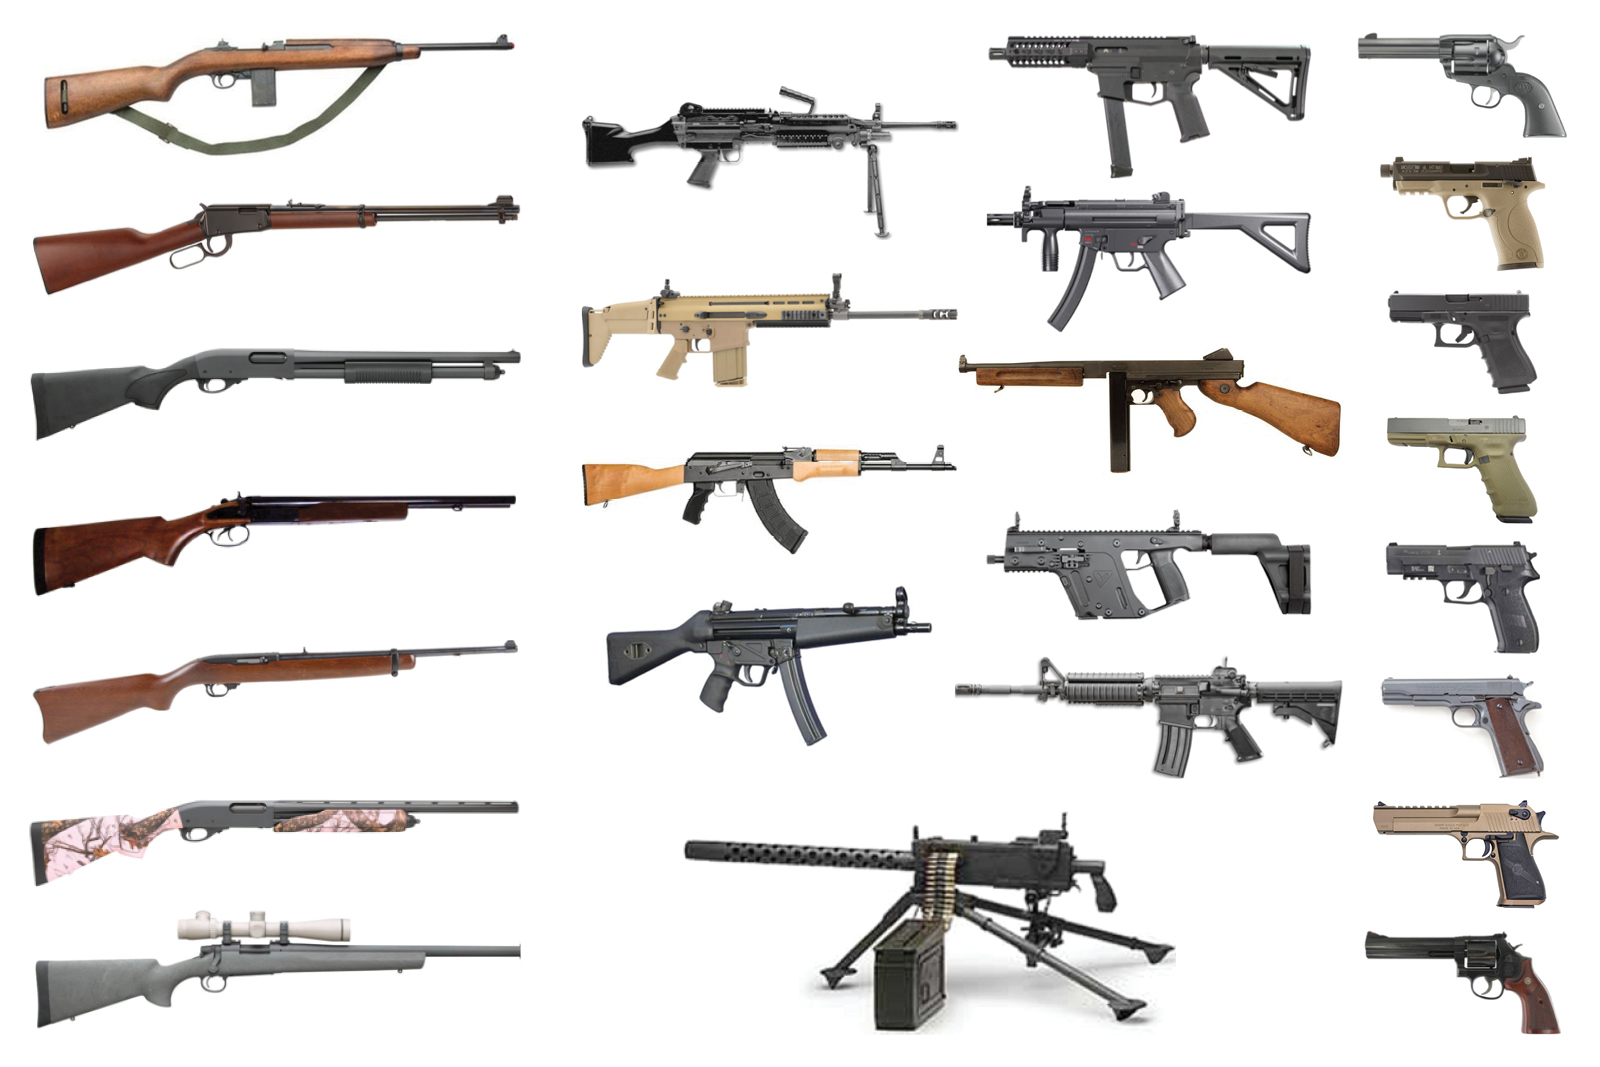 Build Your Own Experience Package - Start with your pick of any 3 guns to build your own custom shooting experience. Or, for extra firepower, add 1, 2, of 3 more guns to complete your shooting experience. Firearms include handguns, shotguns, rifles, and machine guns. From Hollywood western movies to modern military forces, these guns have earned their place in American history and culture — and now you can try them for yourself.